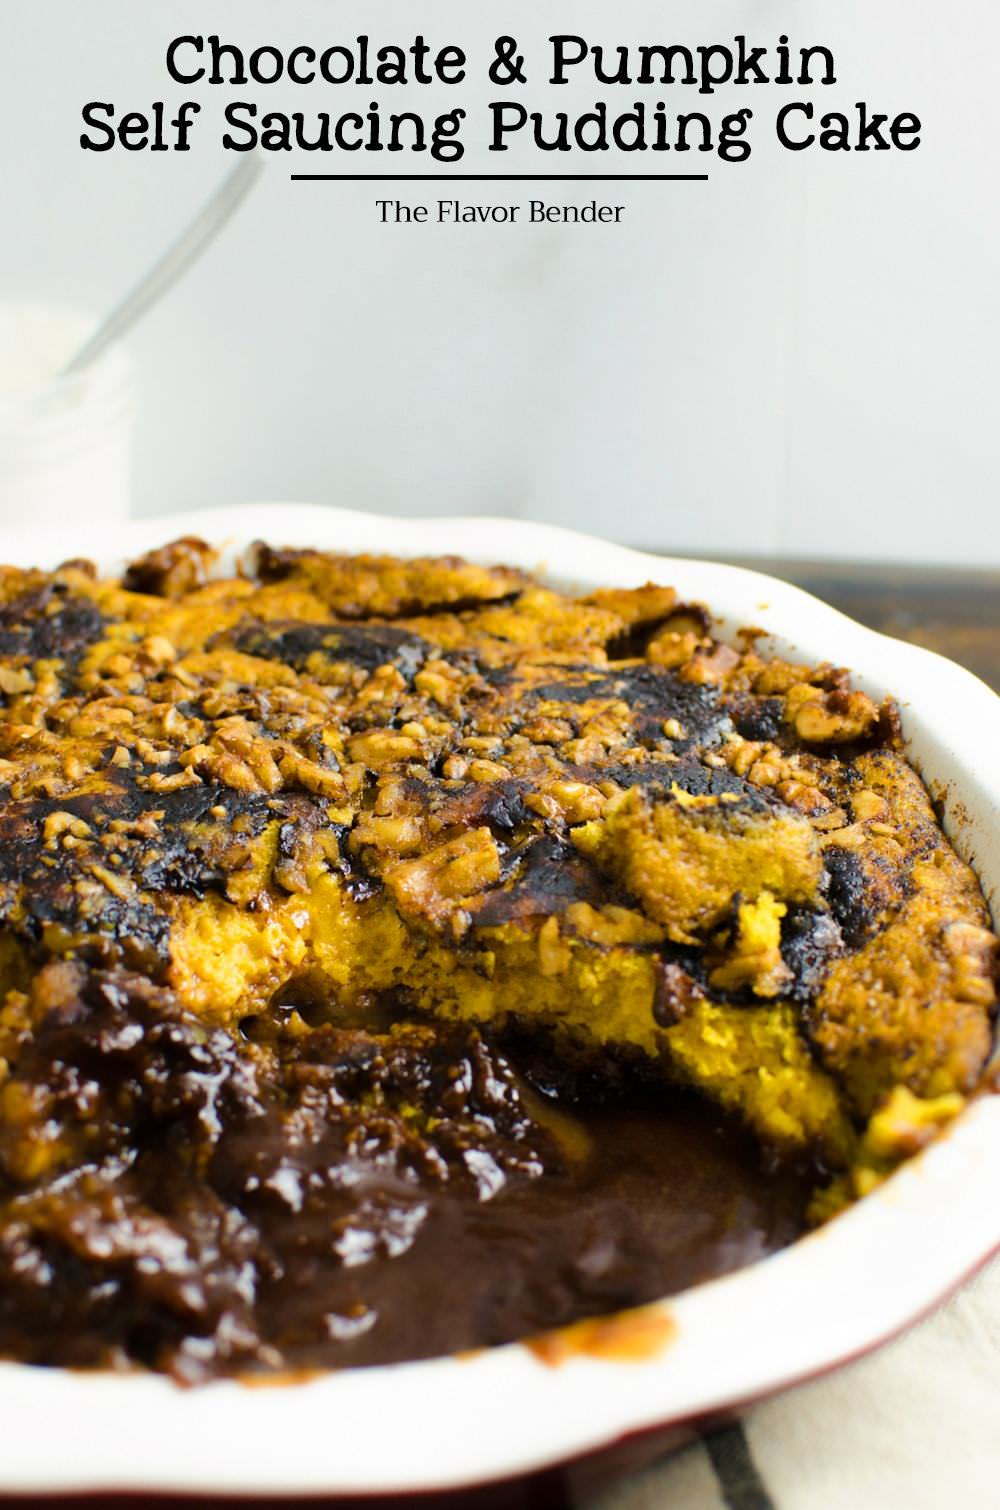 Saucing Pudding Cake - A warm, fudgy, chocolatey, pumkin spiced cake ...